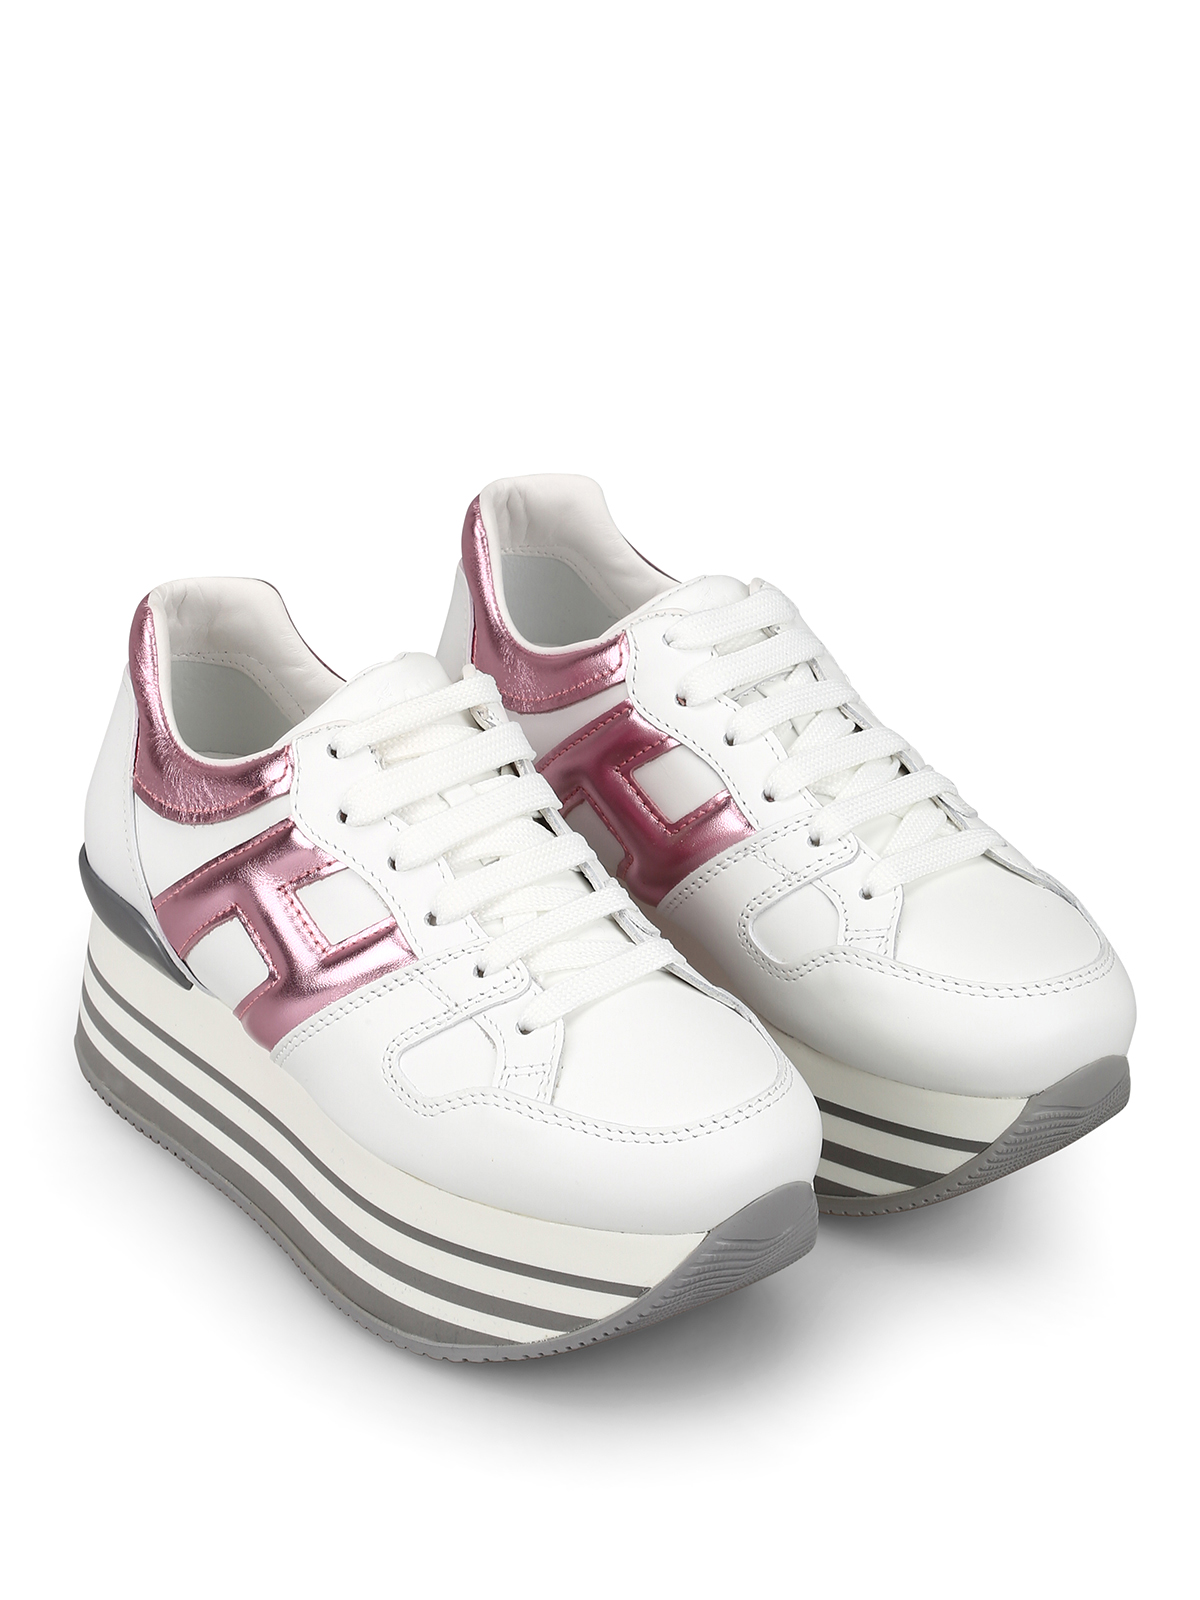 Hogan - H283 sneakers with maxi 222 sole - trainers ...